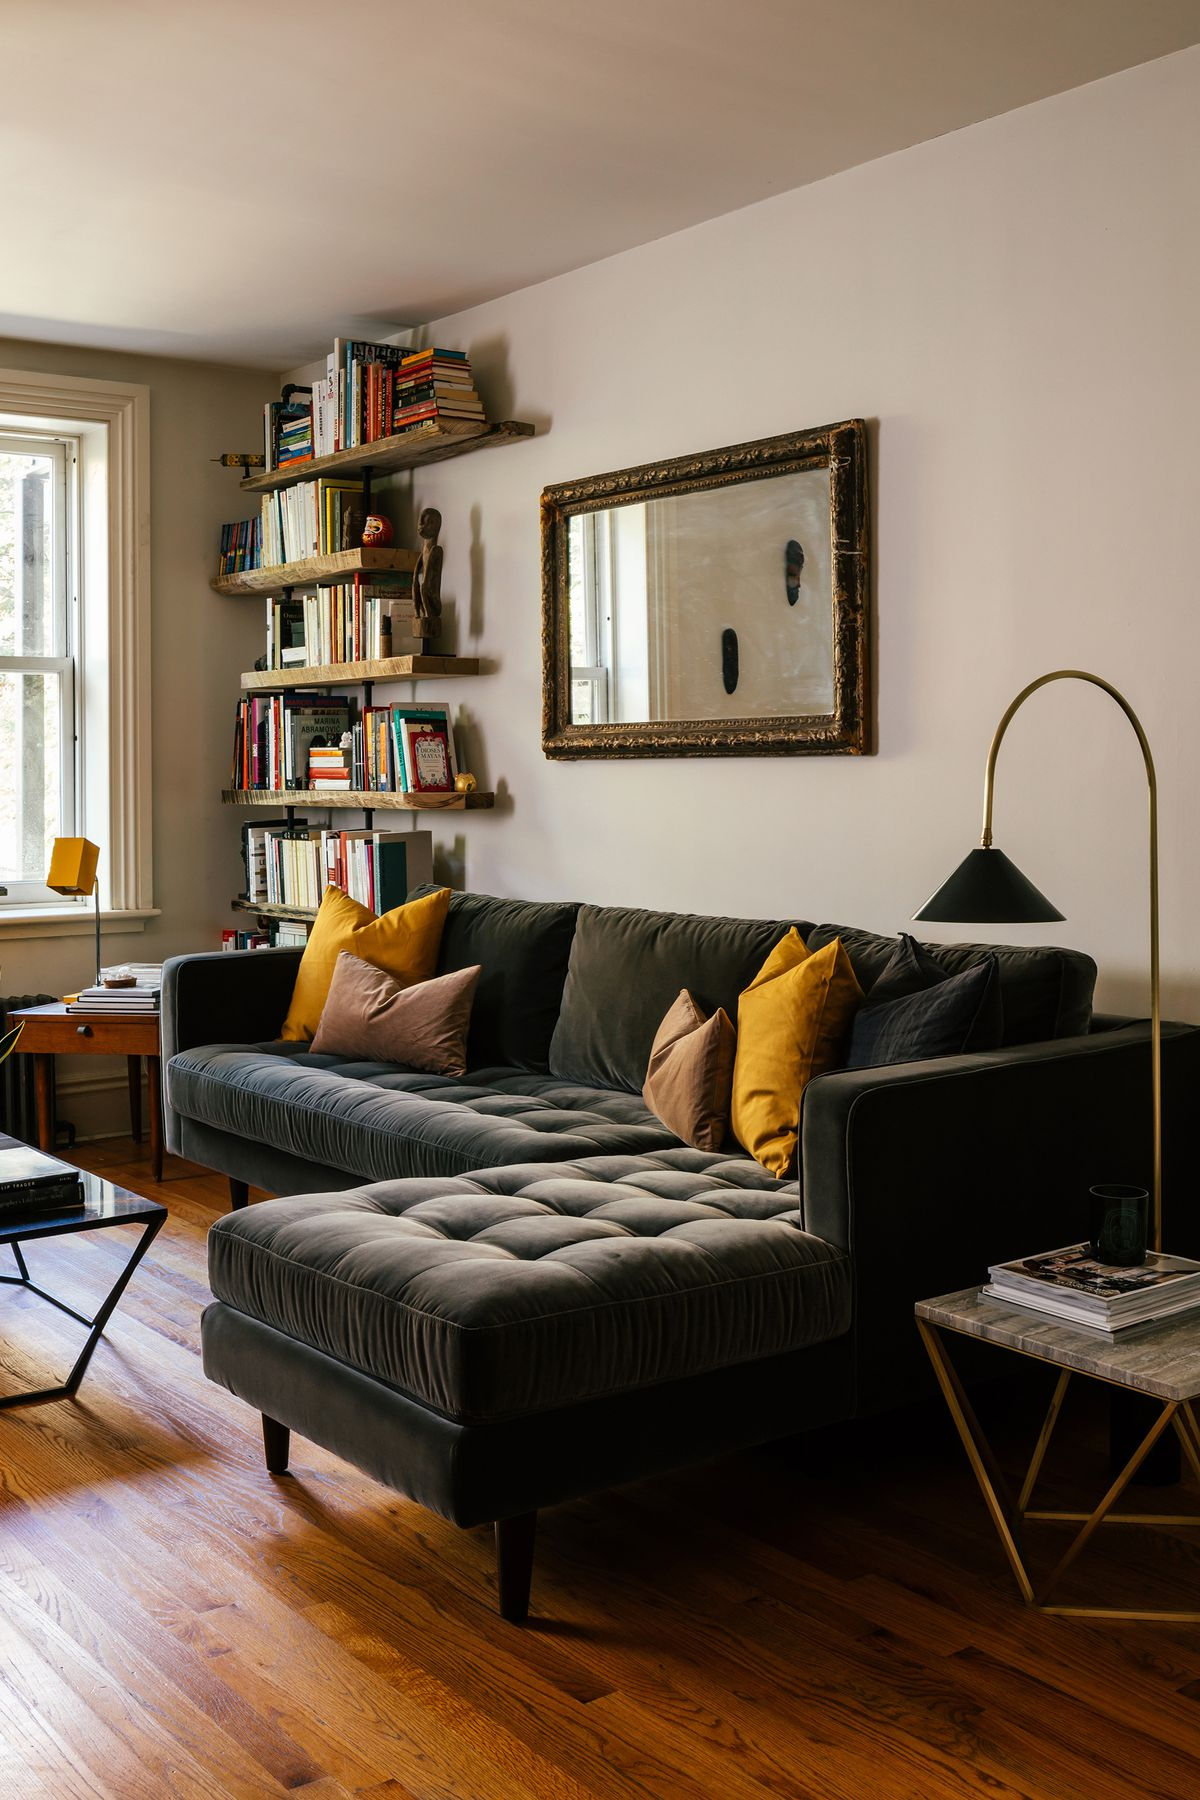 A gray, velvet-upholstered sofa has yellow pillows on it. A bookcase filled with books sits to one side, a lamp on the other.